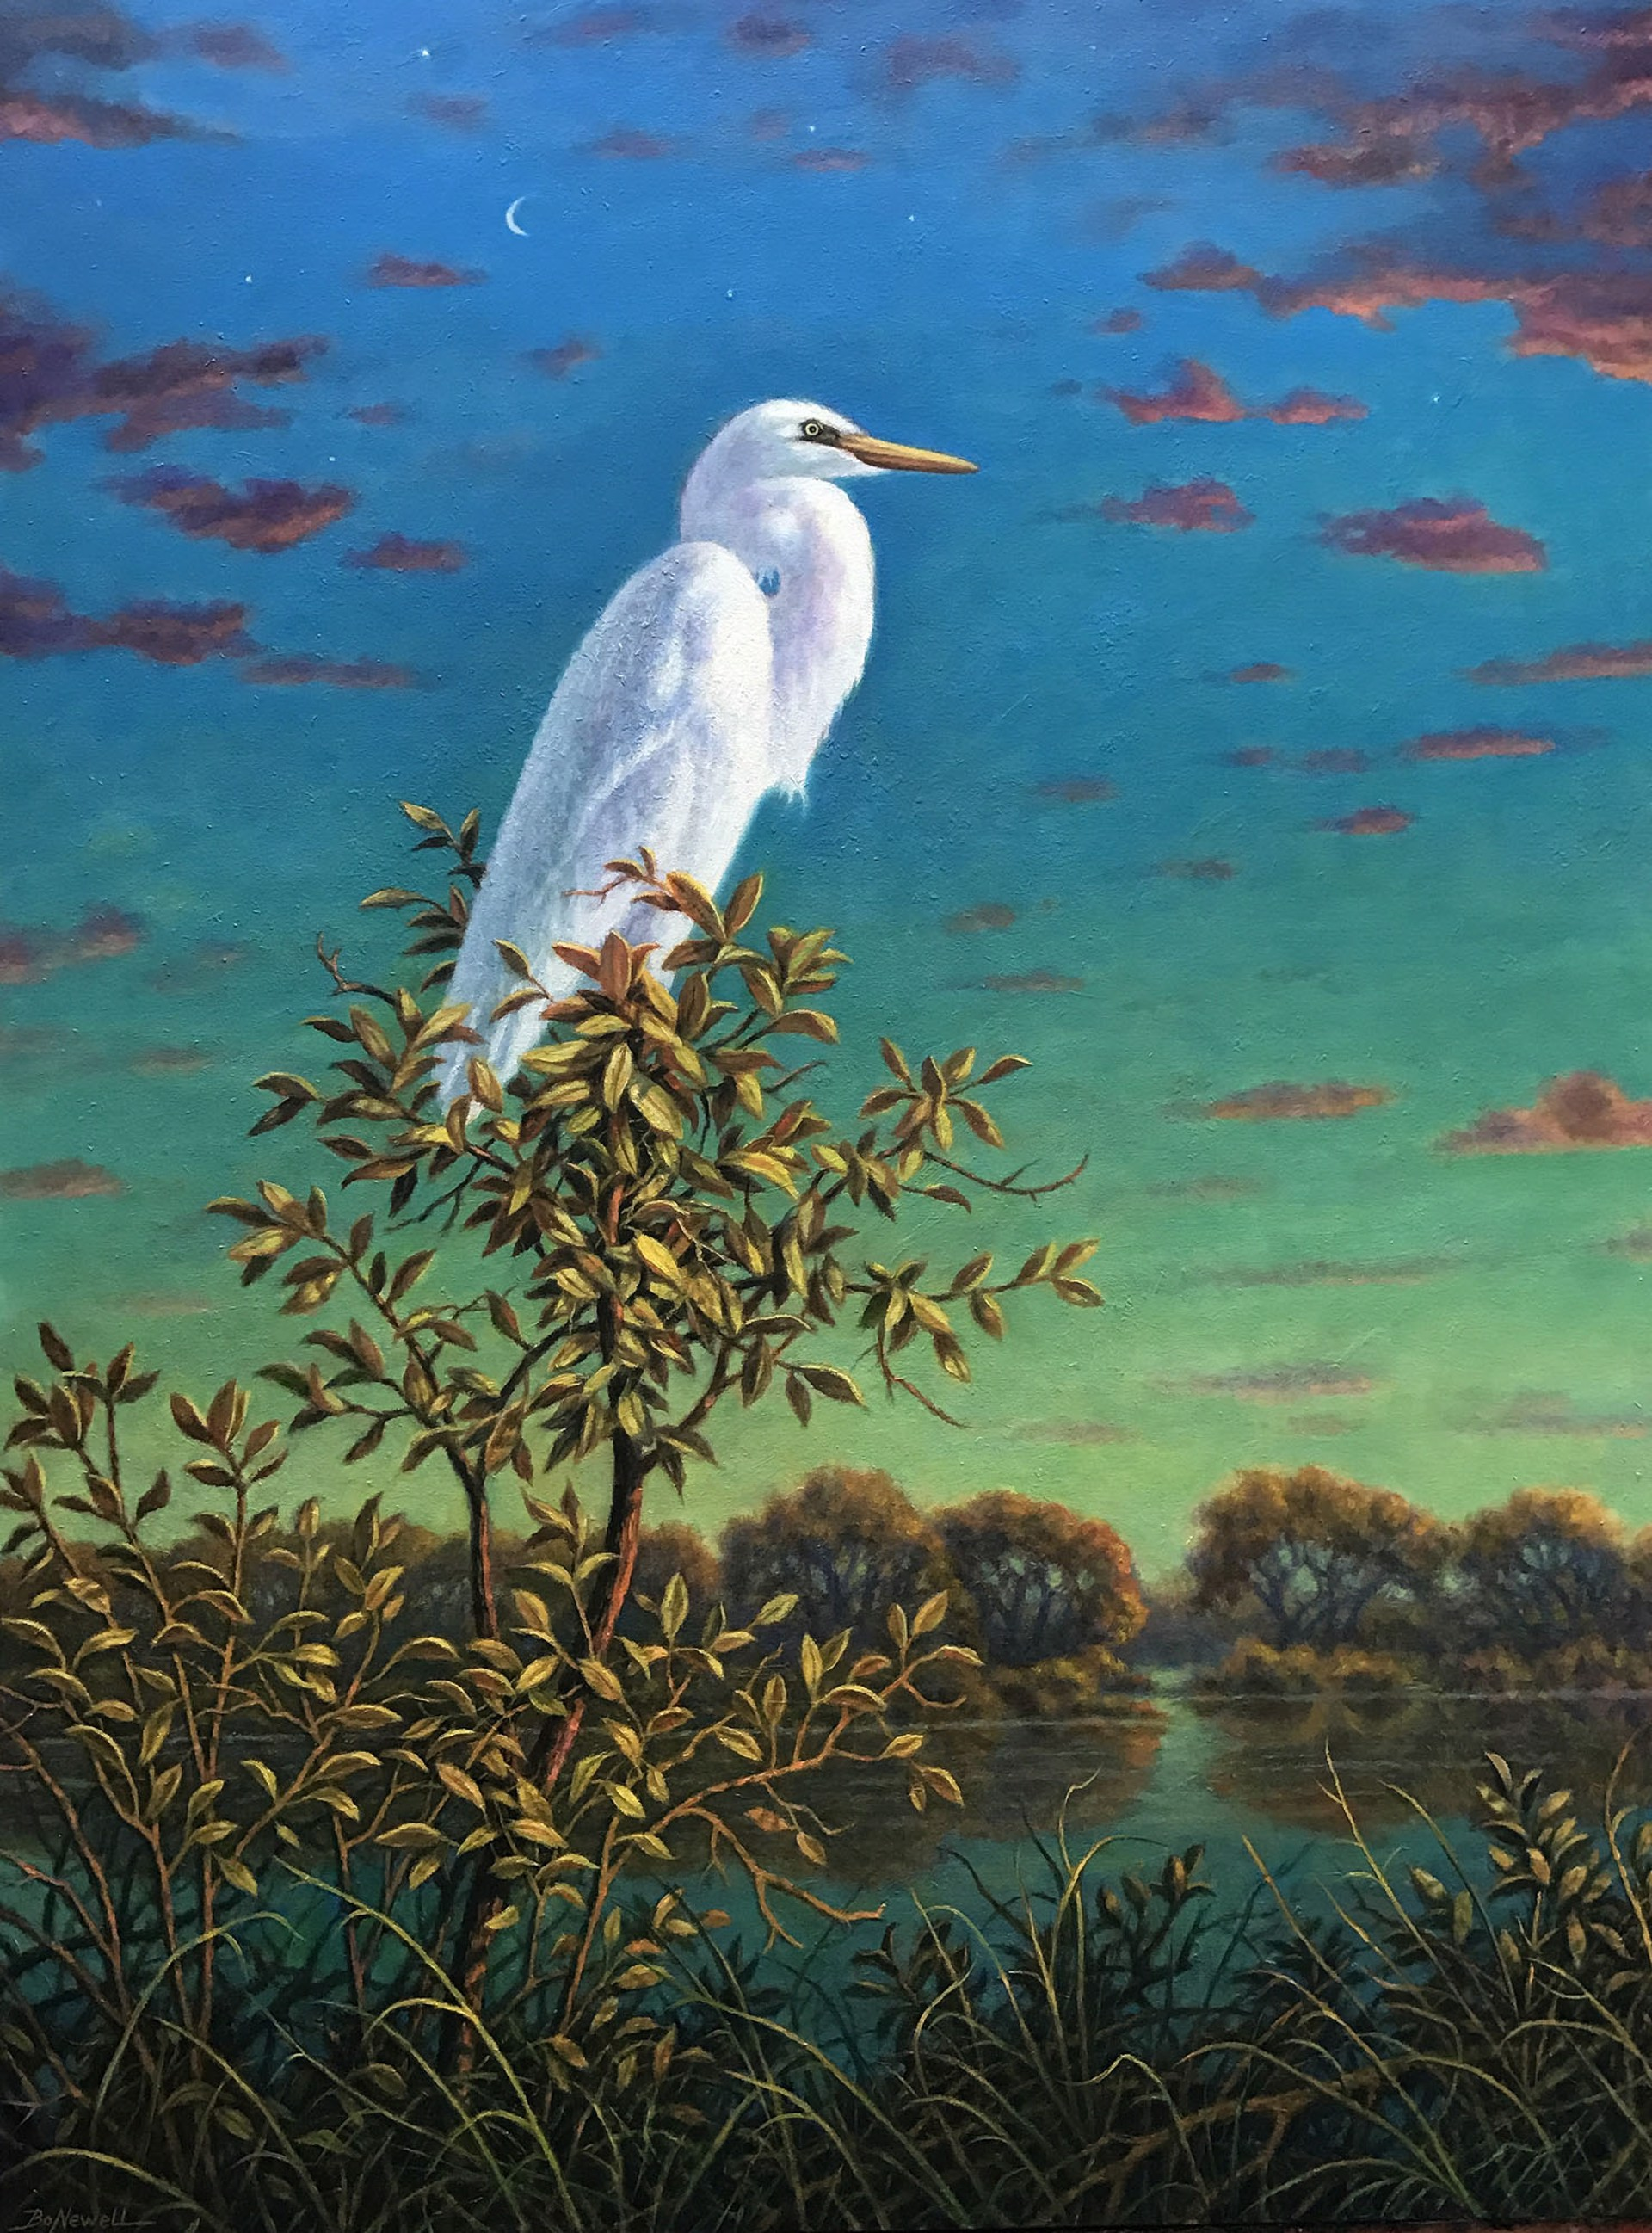 White Egret with Crescent Moon by Bo Newell